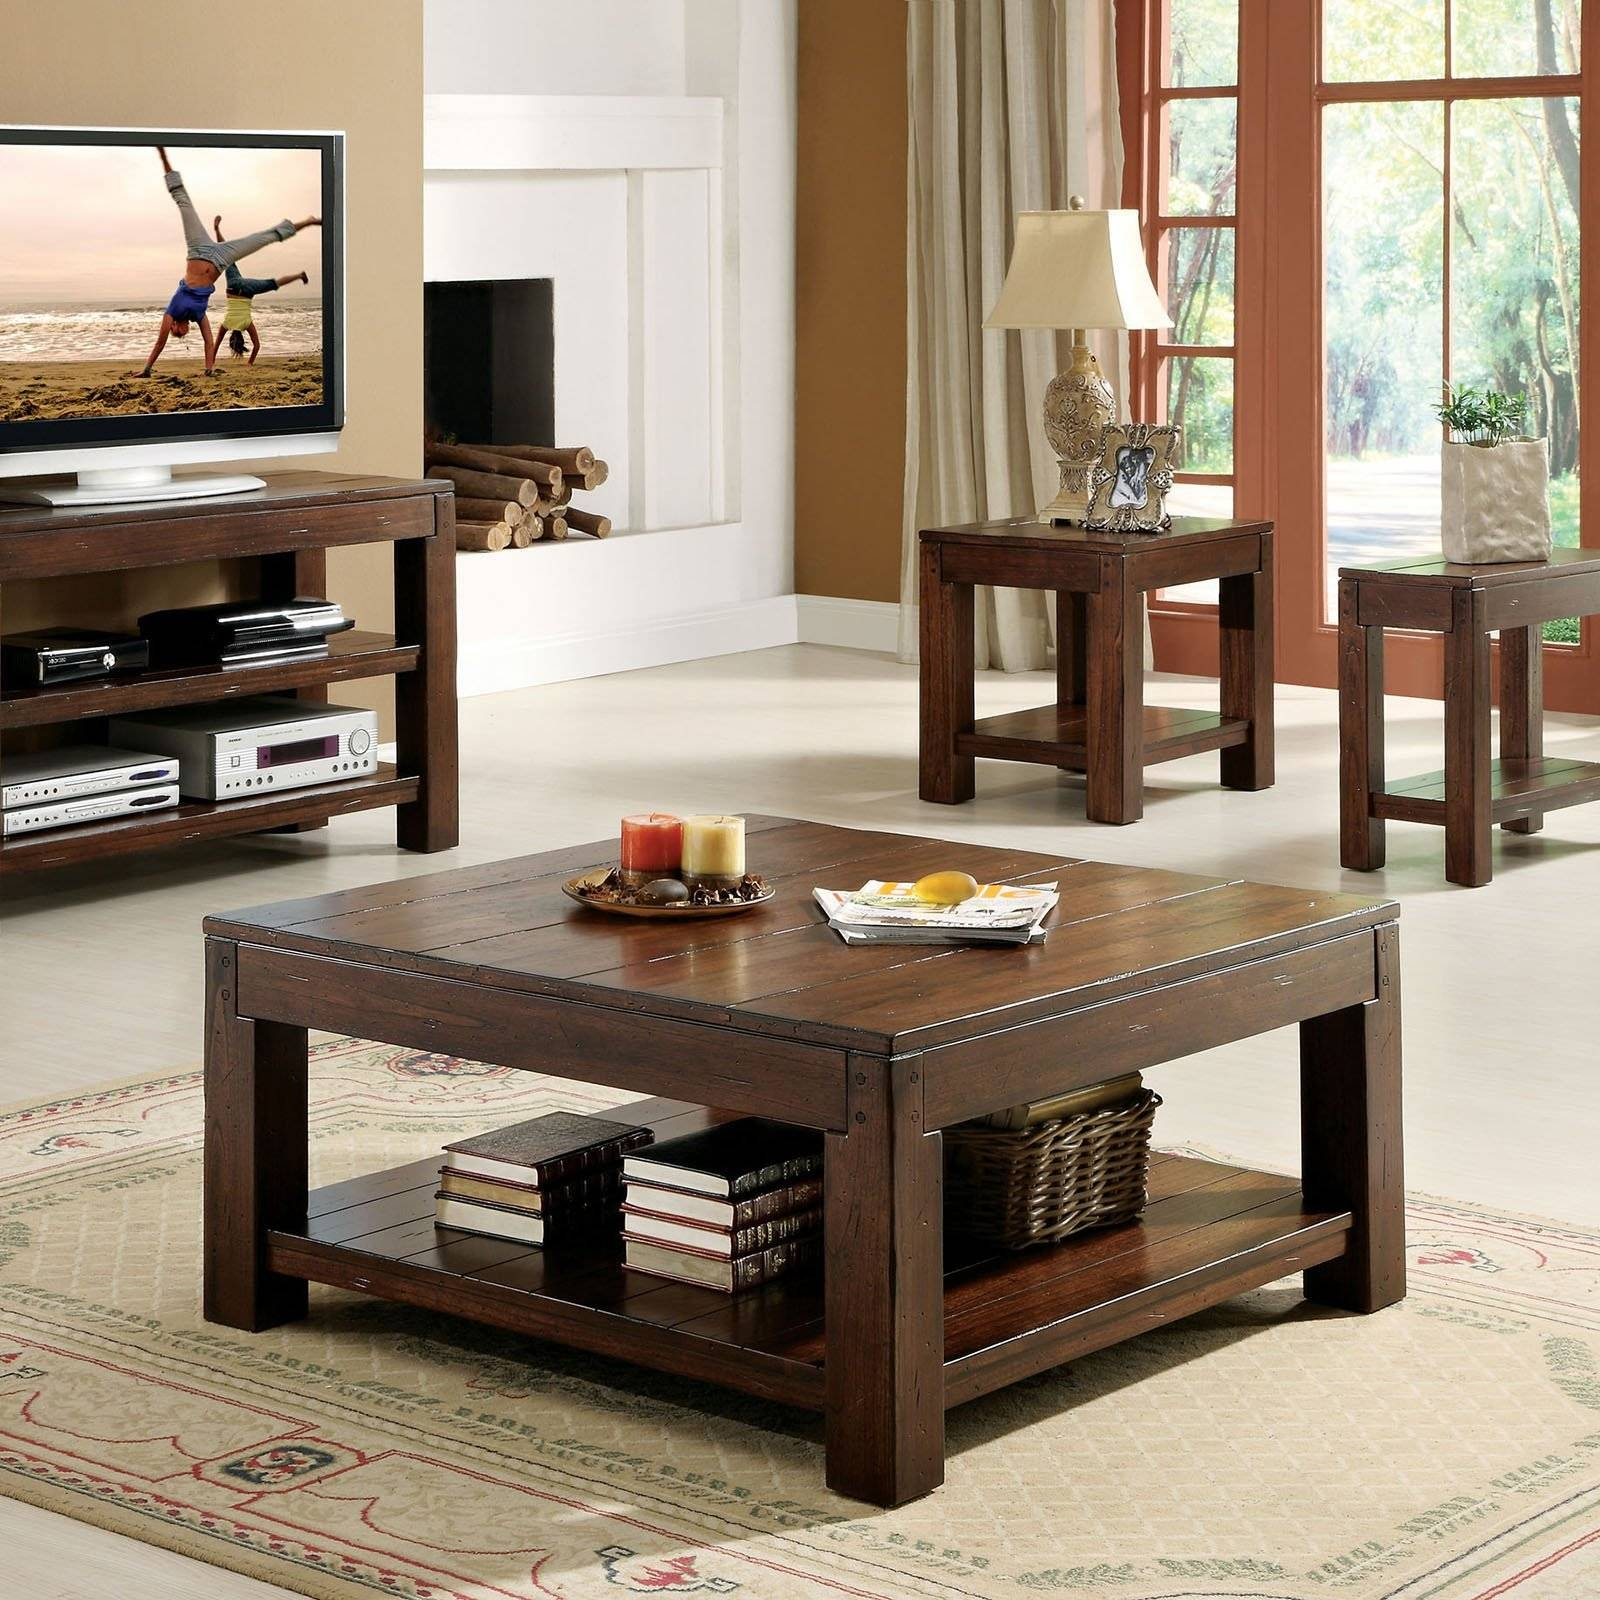 30 The Best Matching Tv Unit and Coffee Tables